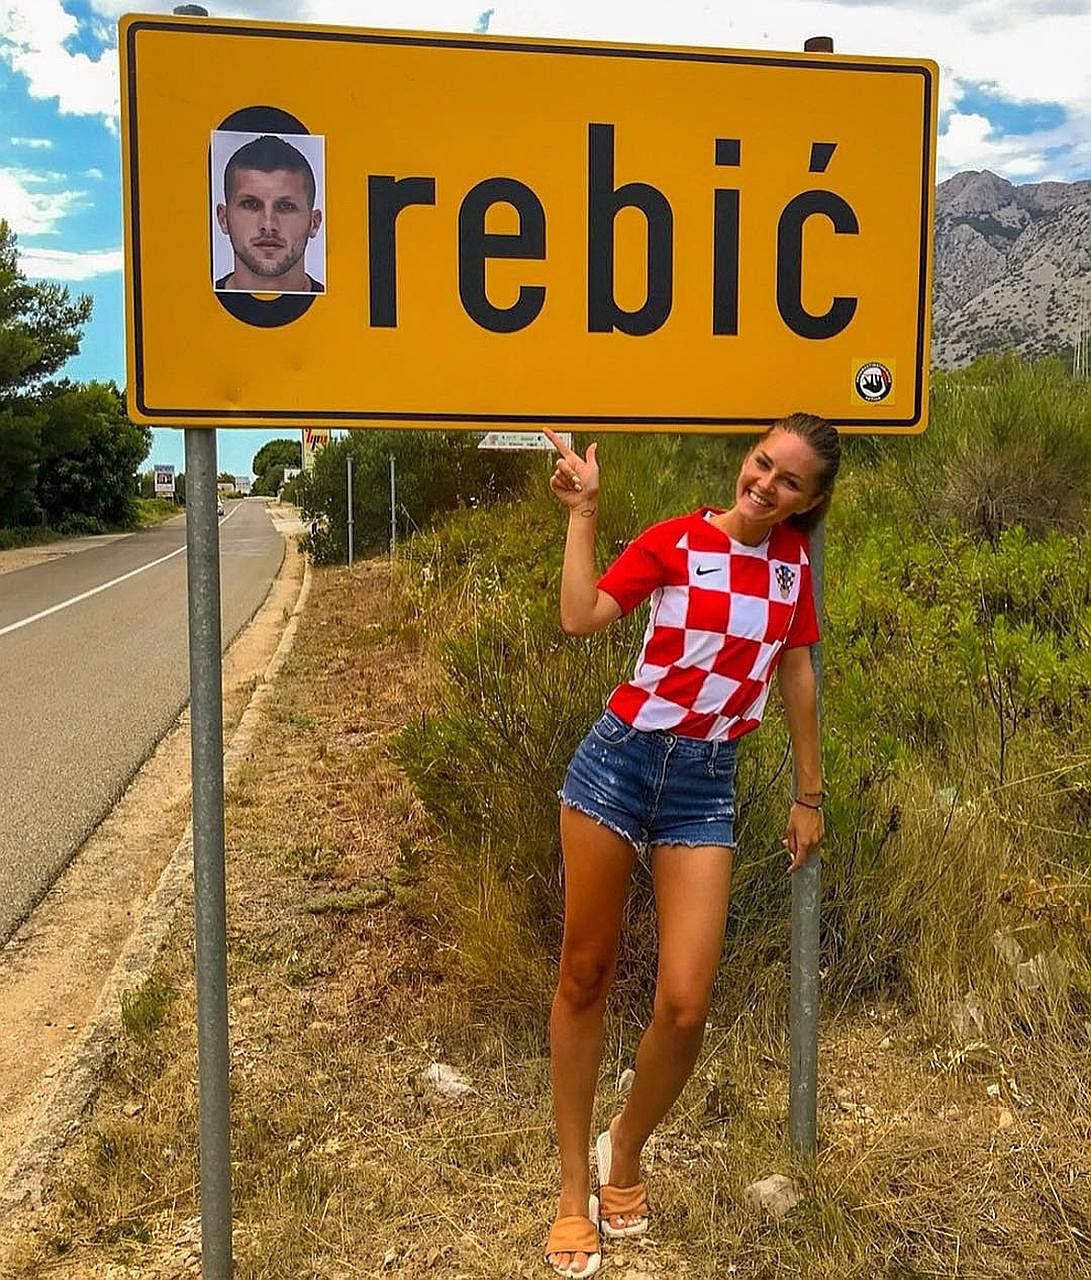 HOT SHOT #1 A fan pointing out that the Croatian town of Orebic has been renamed (Ante) Rebic after the Croatia winger. He is expected to line up against England today in their semi-final as Croatia aim to go one better than the Class of '98. CAUGHT